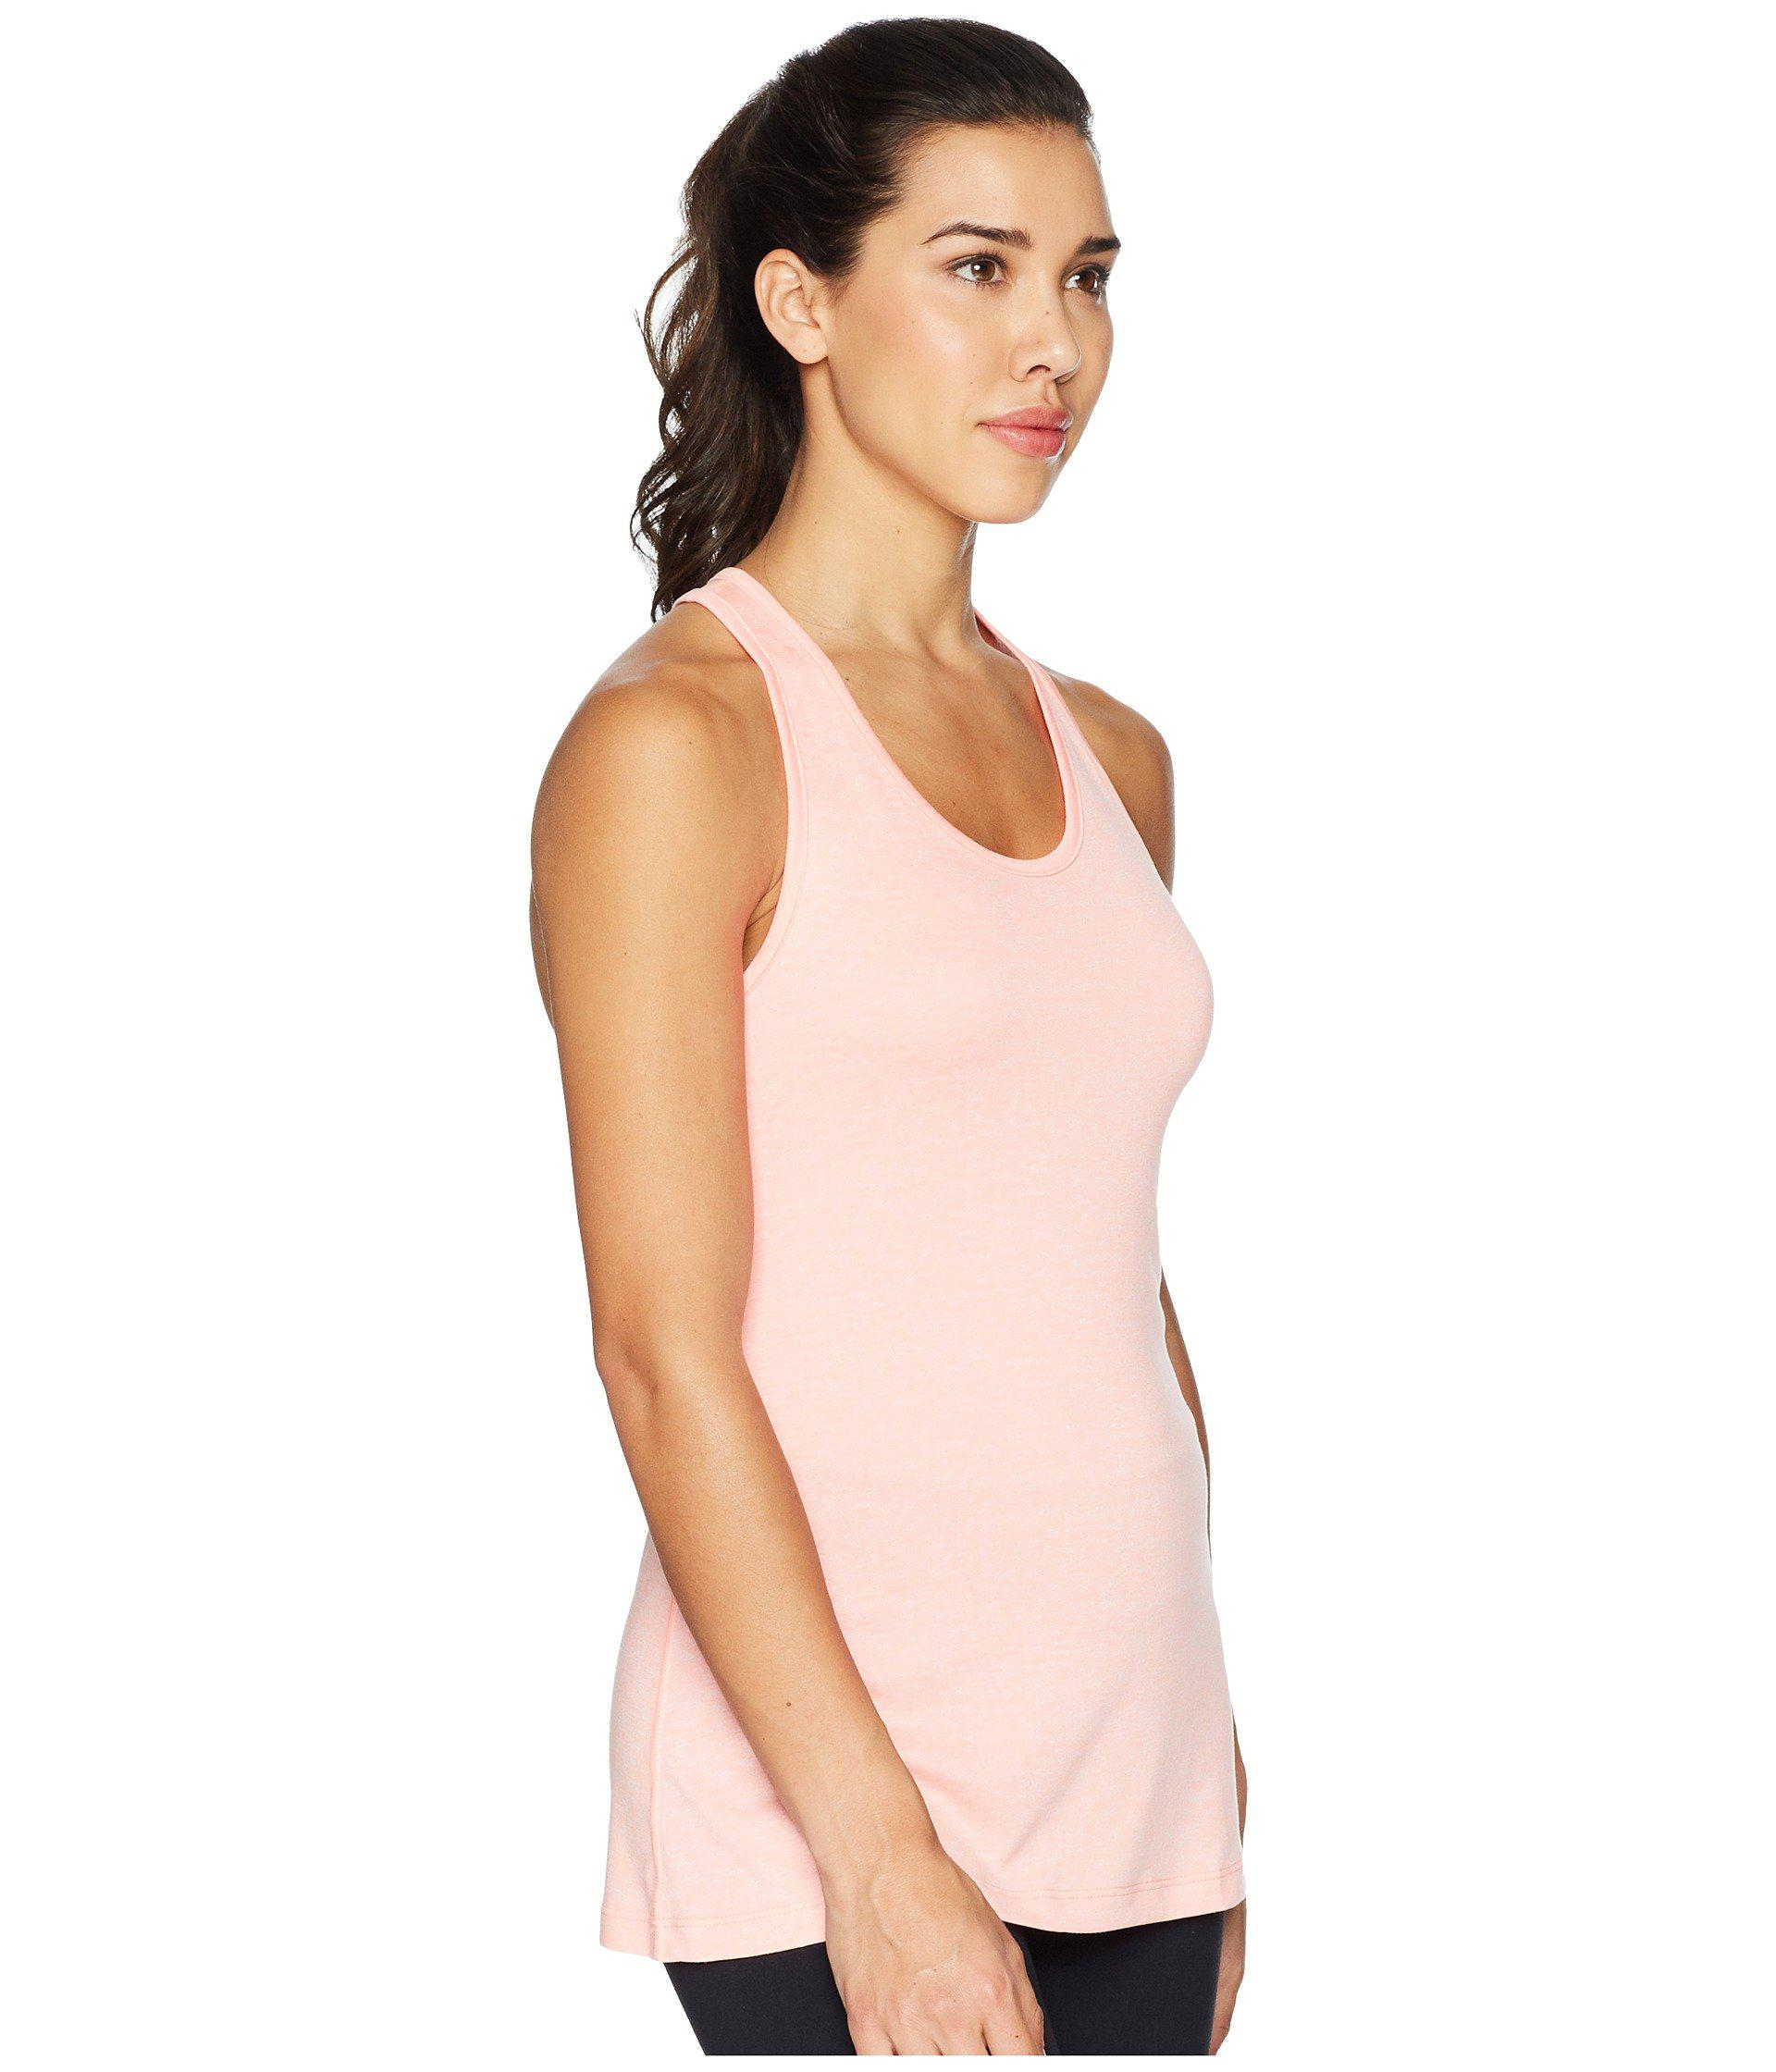 335ba56b524569 Lyst - Nike Balance Cross-dye Veneer Dry Tank Top in Pink - Save 17%